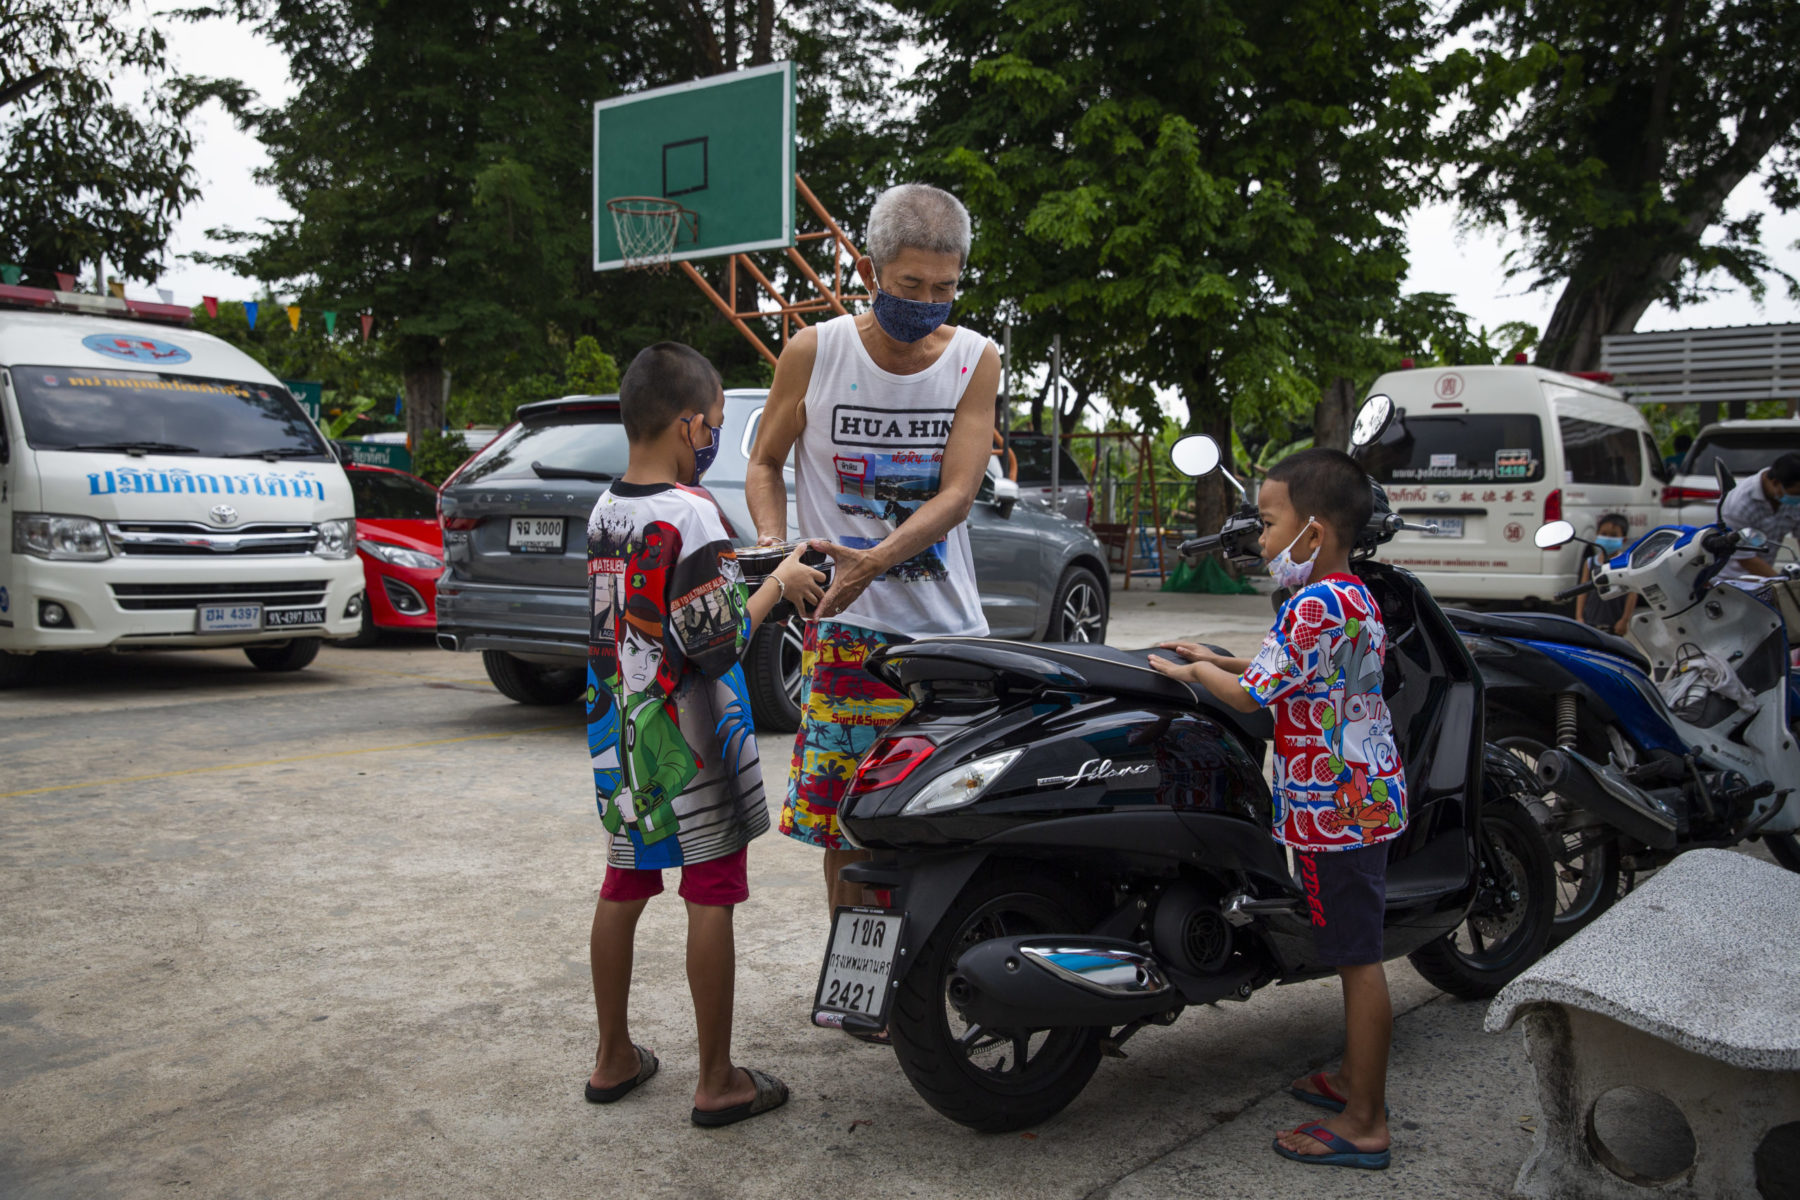 A grandfather hands meals to two grandchildren next to their motorcycle.